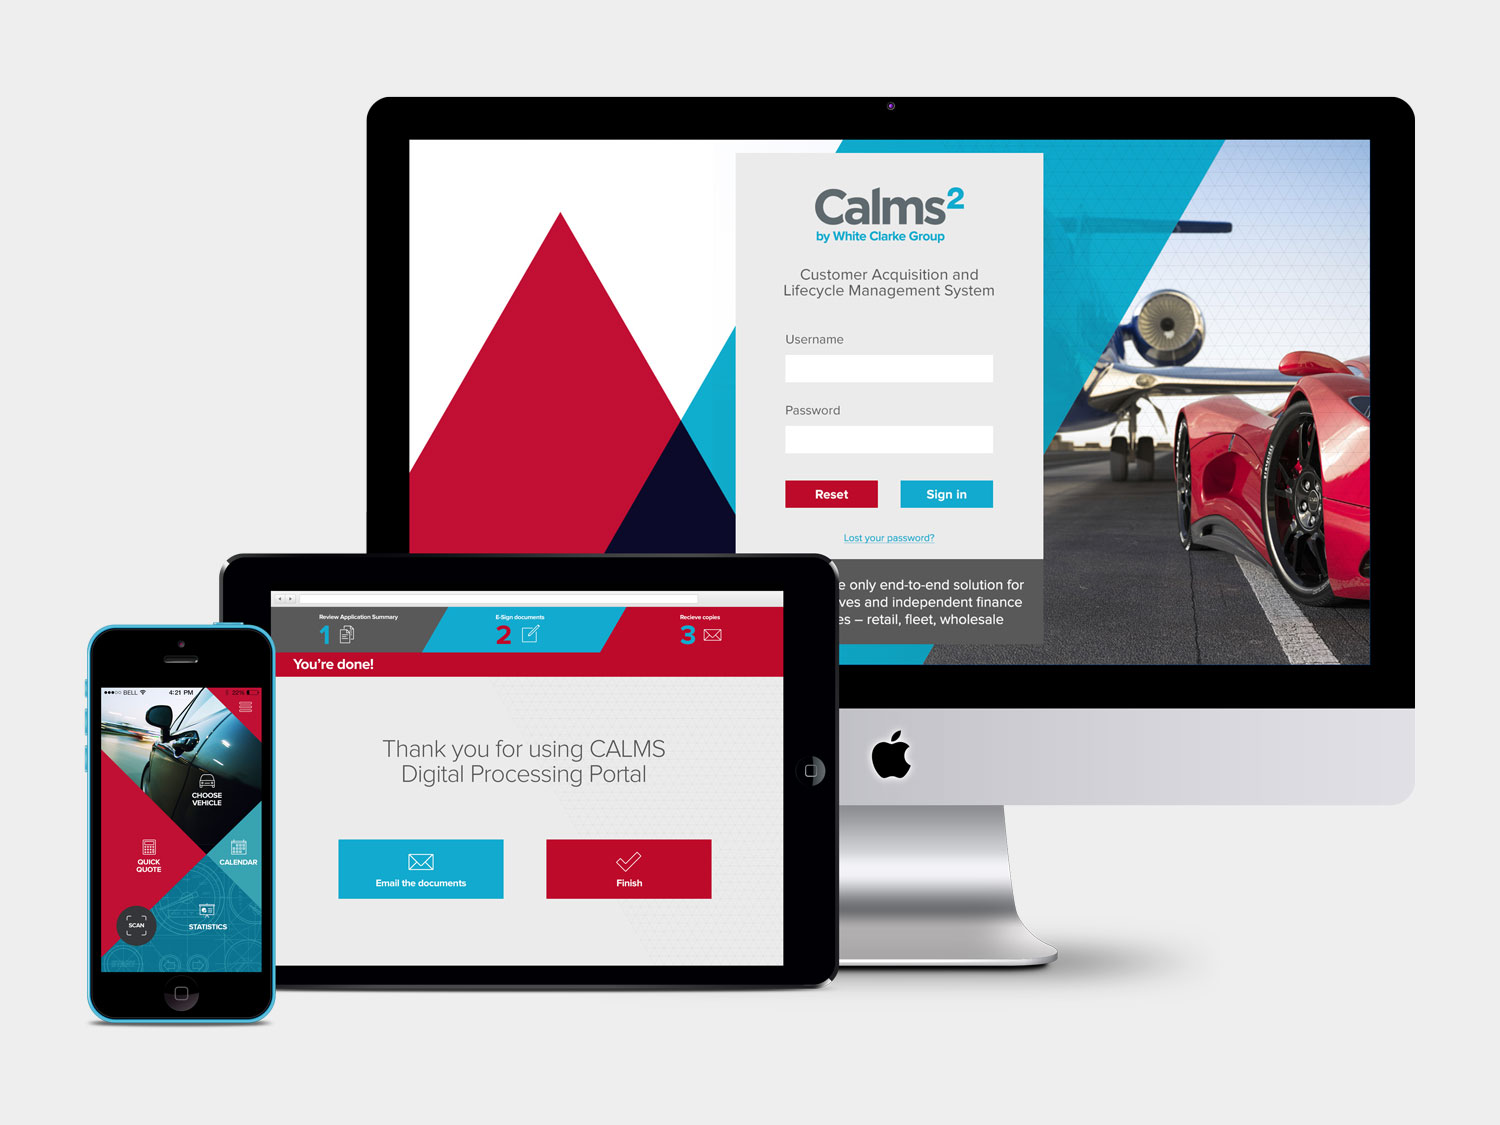 responsive-CALMS-mockup_high-res_login